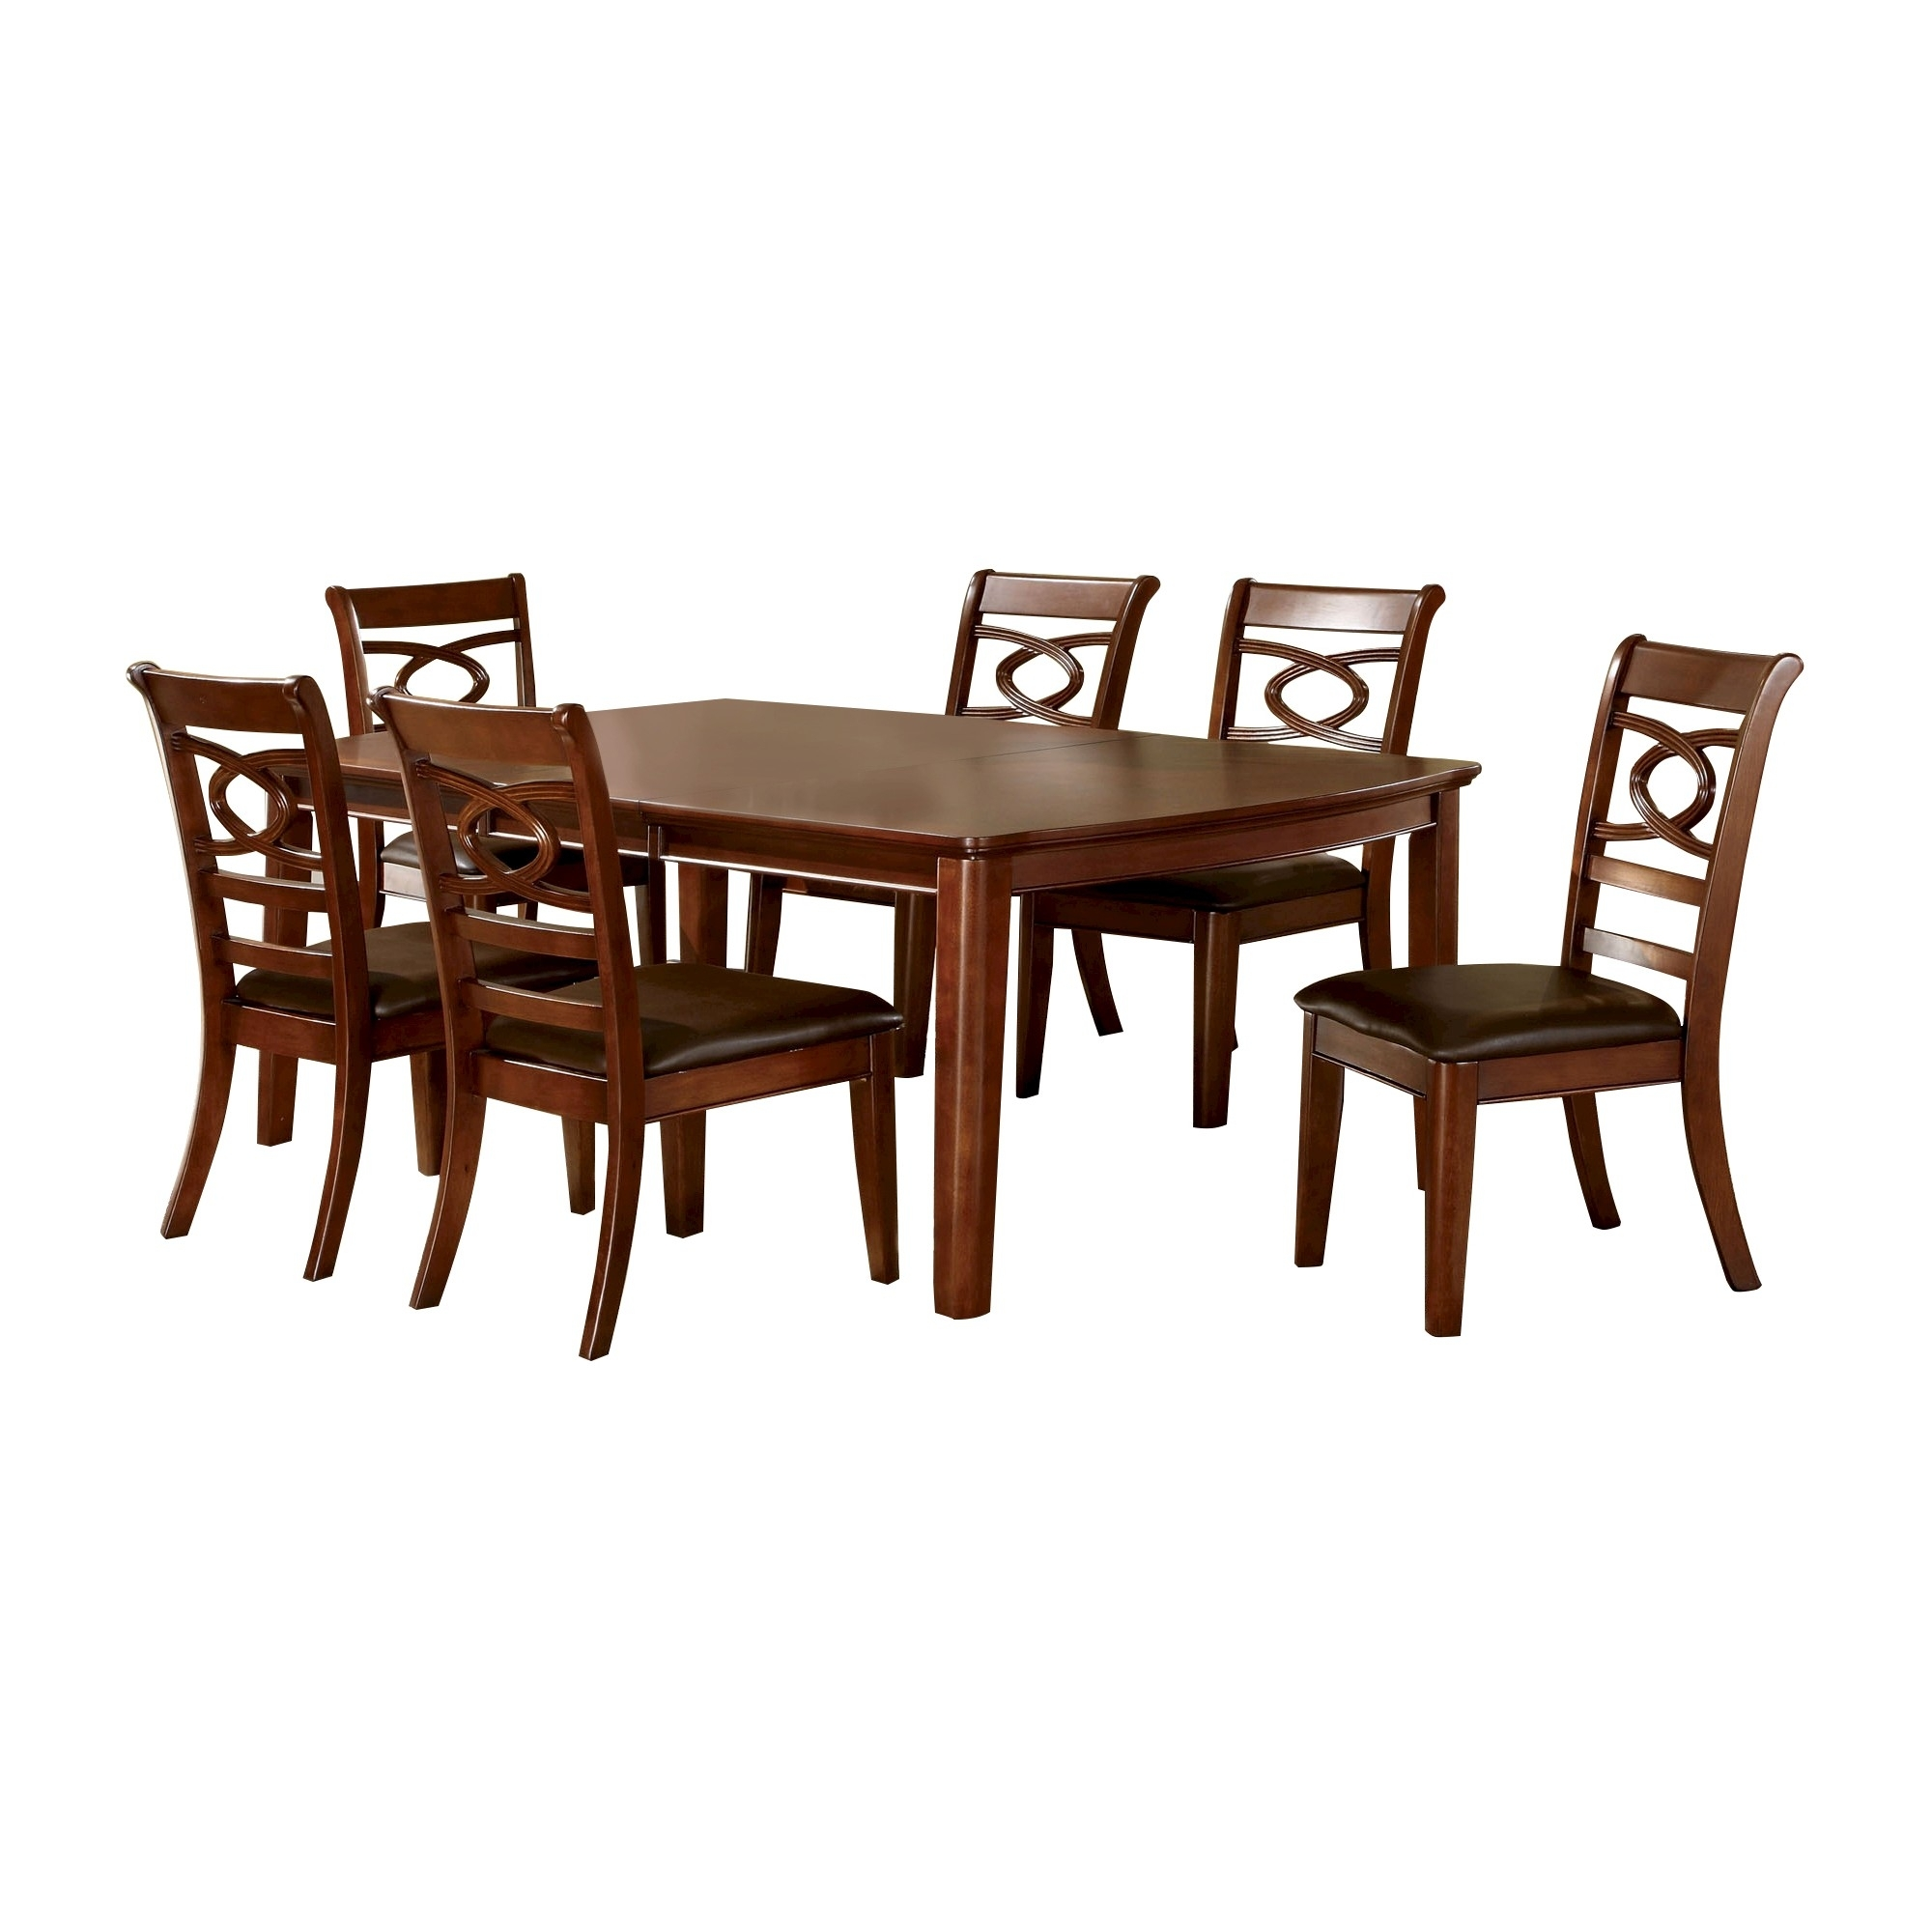 Sun & Pine 7Pc Simple Dining Table Set Wood/brown Cherry | Products Throughout Recent Norwood 7 Piece Rectangle Extension Dining Sets (Image 19 of 20)